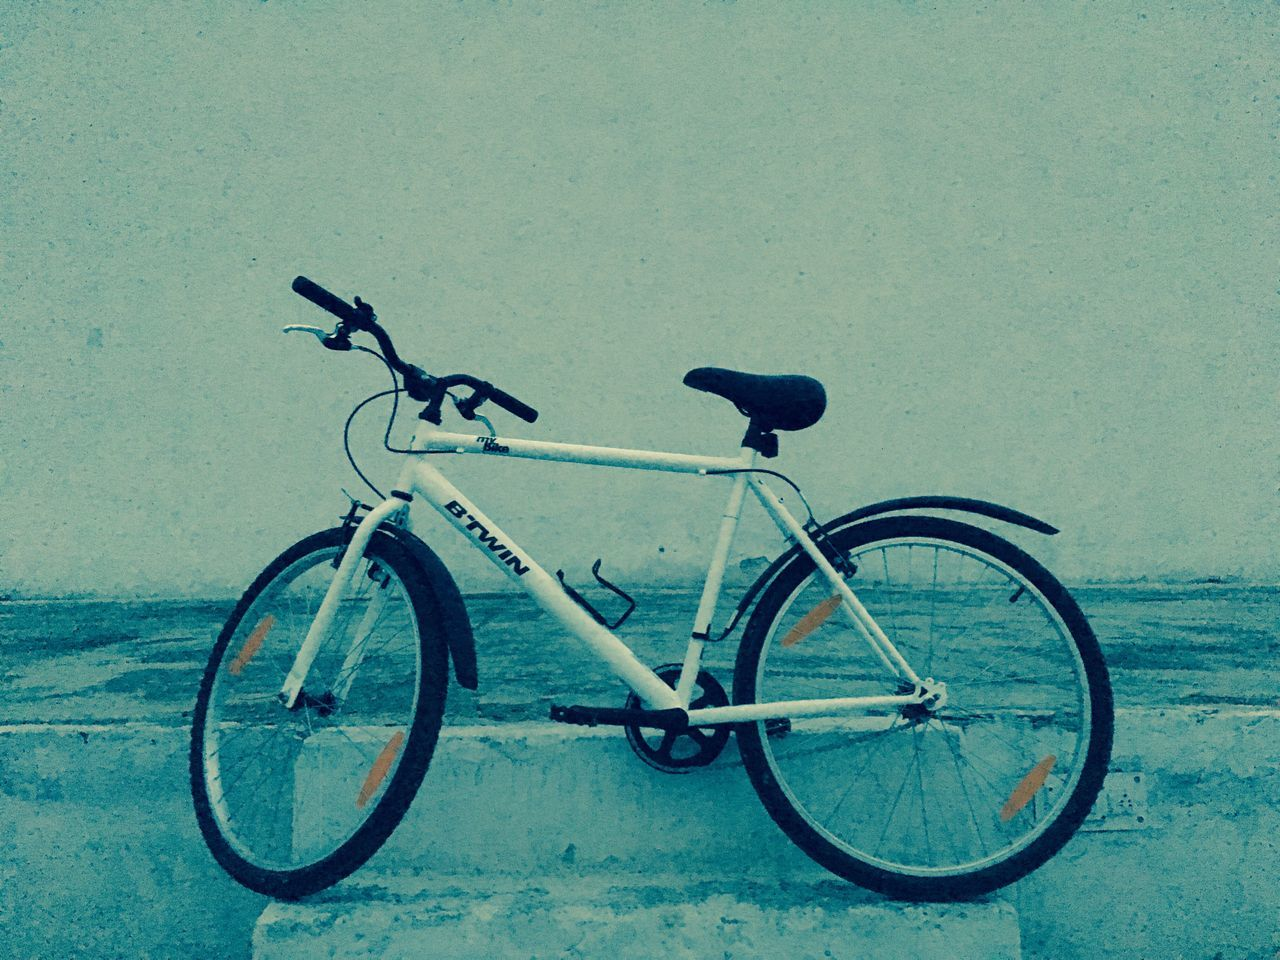 Bicycle Transportation Mode Of Transport Stationary Land Vehicle No People Outdoors Day Bicycle Rack City Night IPhoneography Mobile Photography IPhone Photography Like4like Likes One Person Likeforfollow Follow4follow Followme Follow Likeforlike Like Sky Weather